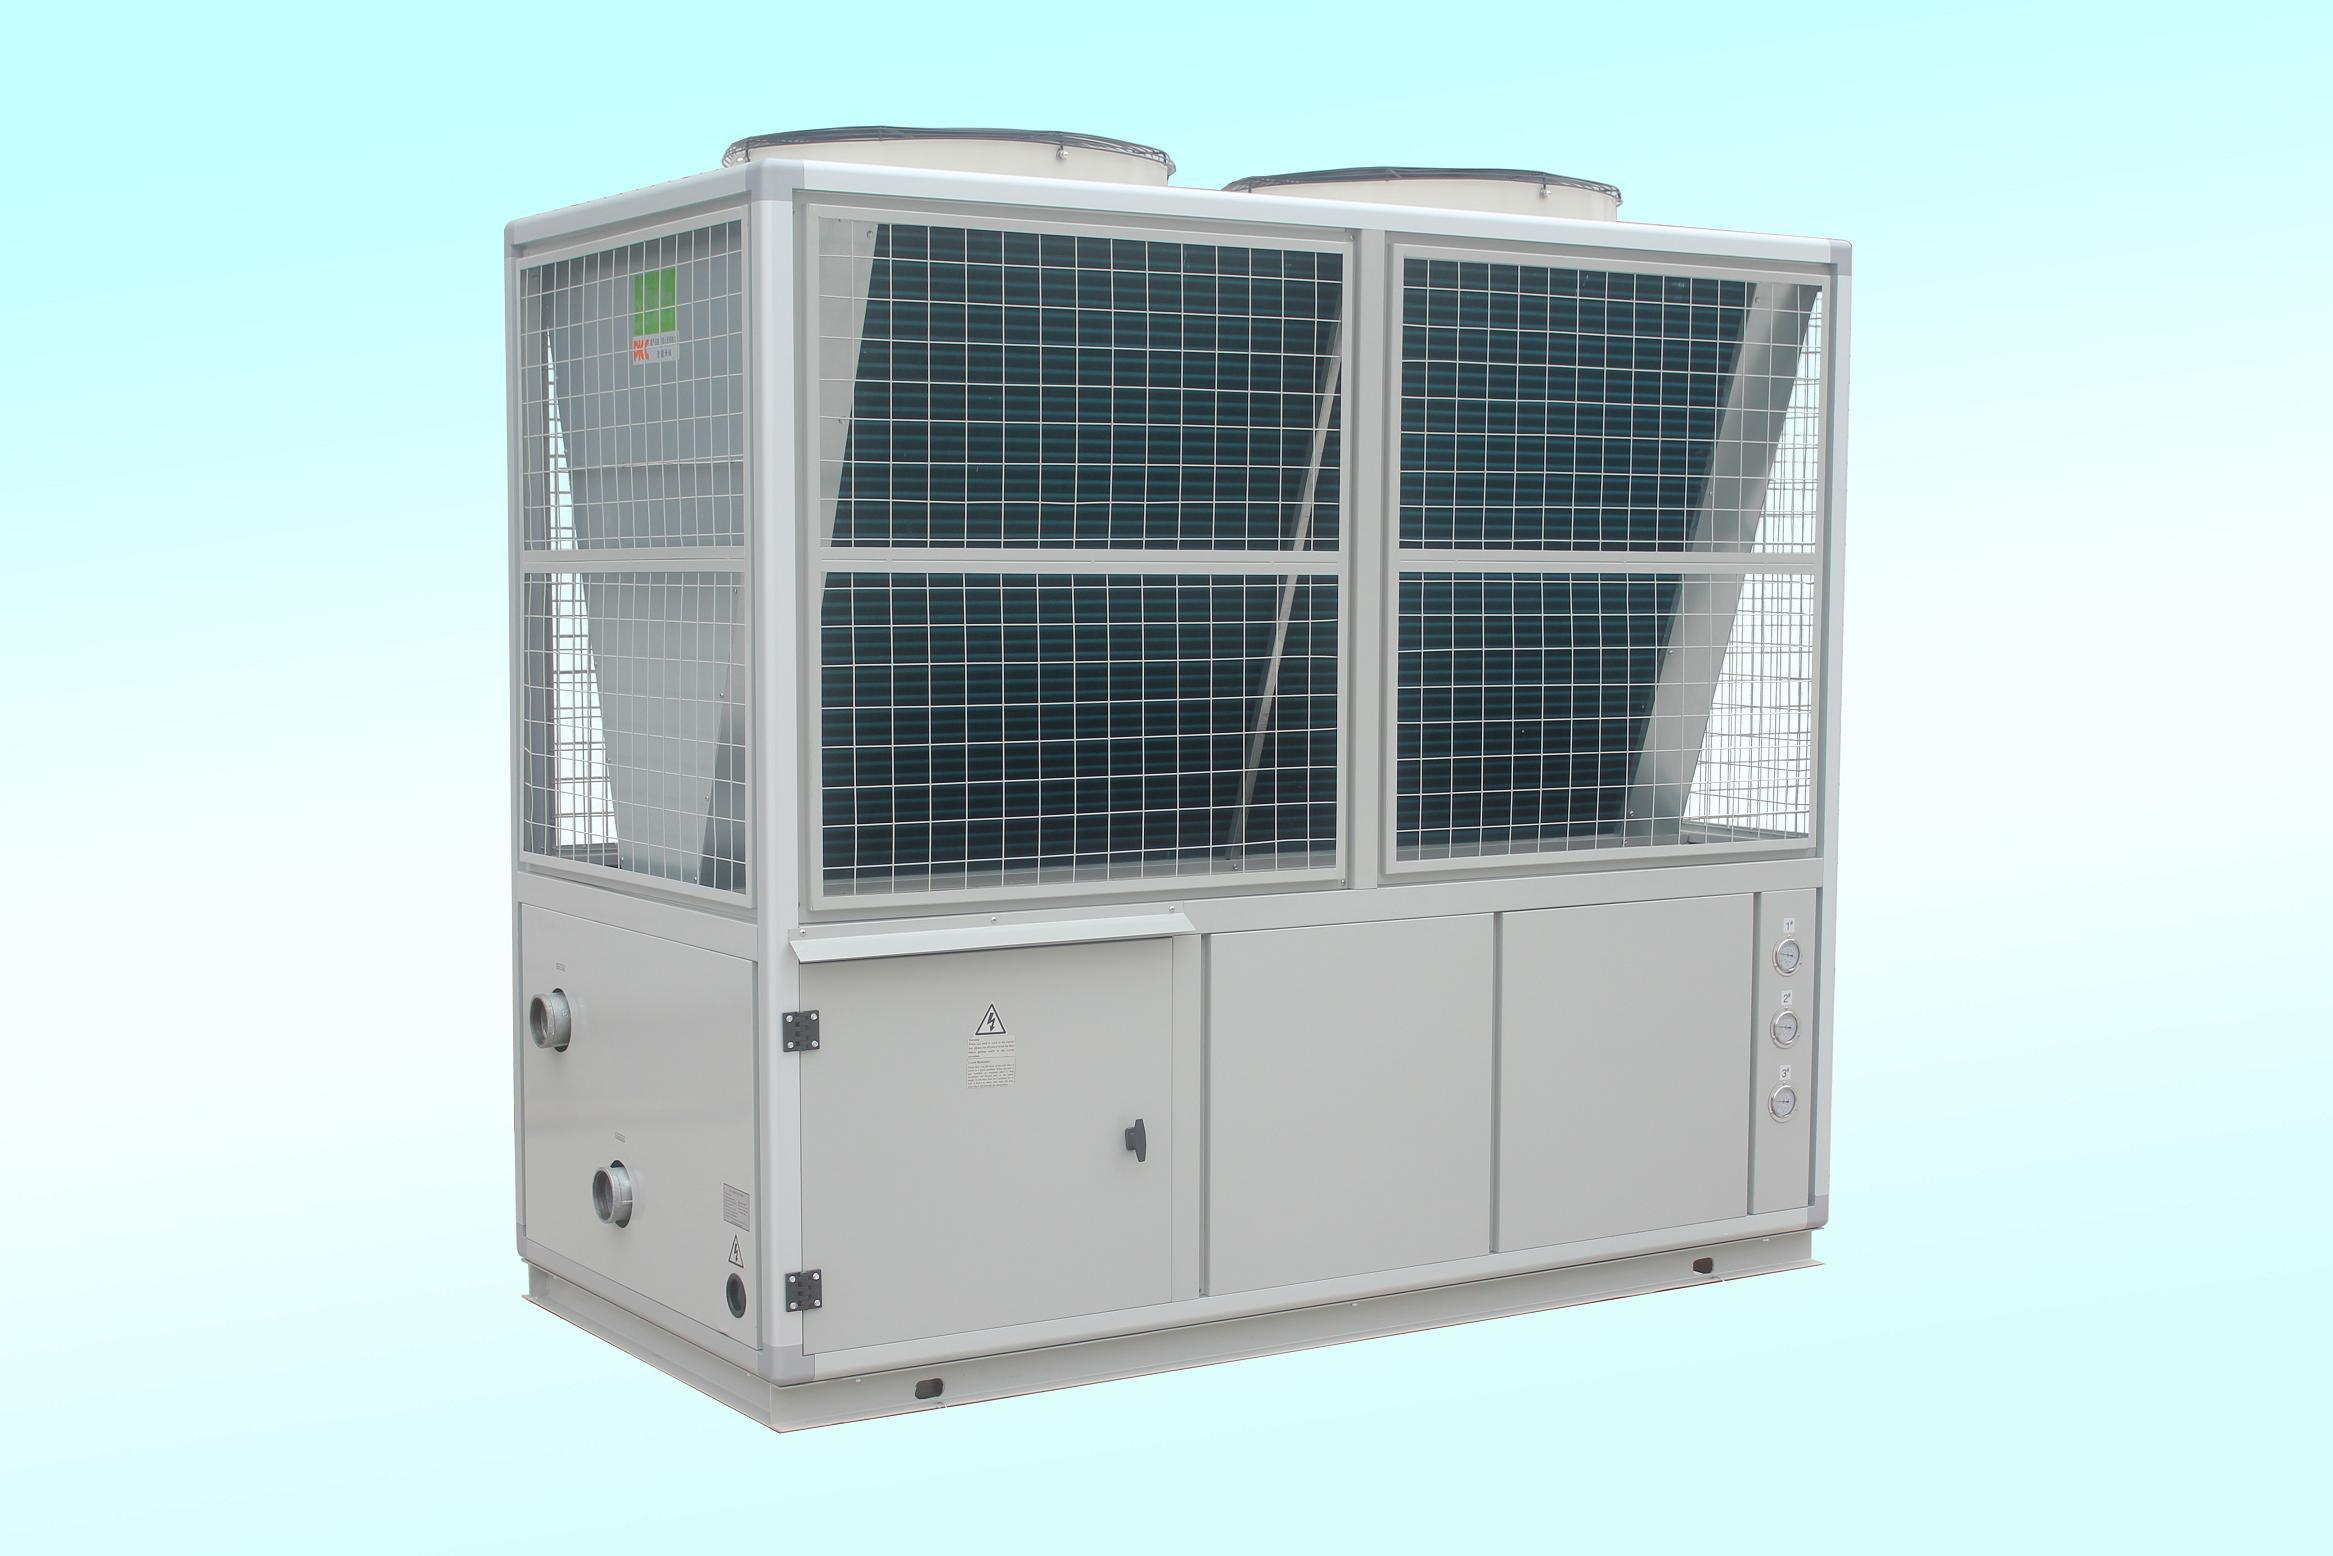 Industrial Chiller Units 1024 · 768 #3C8F8F